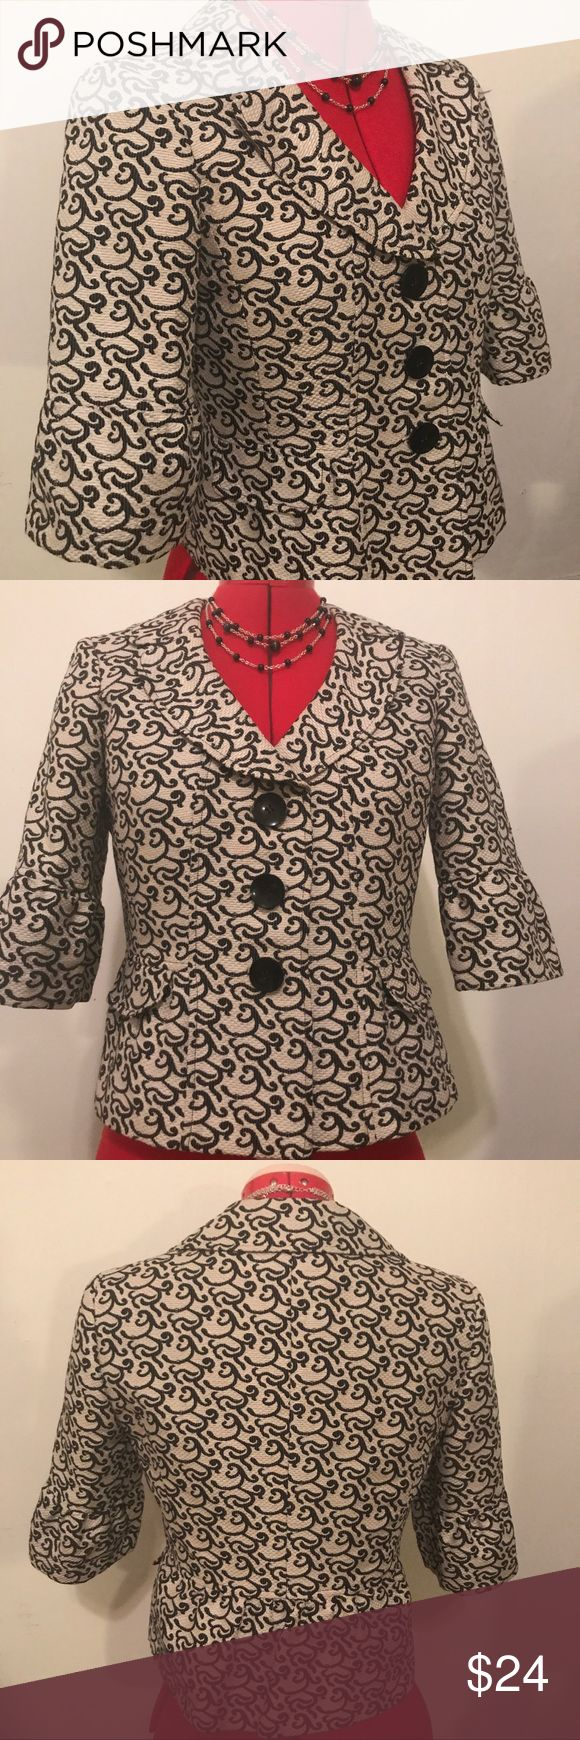 """NINE WEST cropped-sleeve jacket Sz 2 Nine west 3-button cropped jacket with flattering portrait collar & elbow-length sleeves. Nylon-cotton fabric has a luxe texture in off-white with an elegant black pattern reminiscent of calligraphy. The overall effect is very chic. Perfect to pair with a black pencil skirt or black pants for the office or business meeting. A generous Size 2 measures abt 16"""" across shoulders, abt 36""""chest & 22"""" Long. Sleeve is 13"""" A slight peplum and similar ruffle on…"""